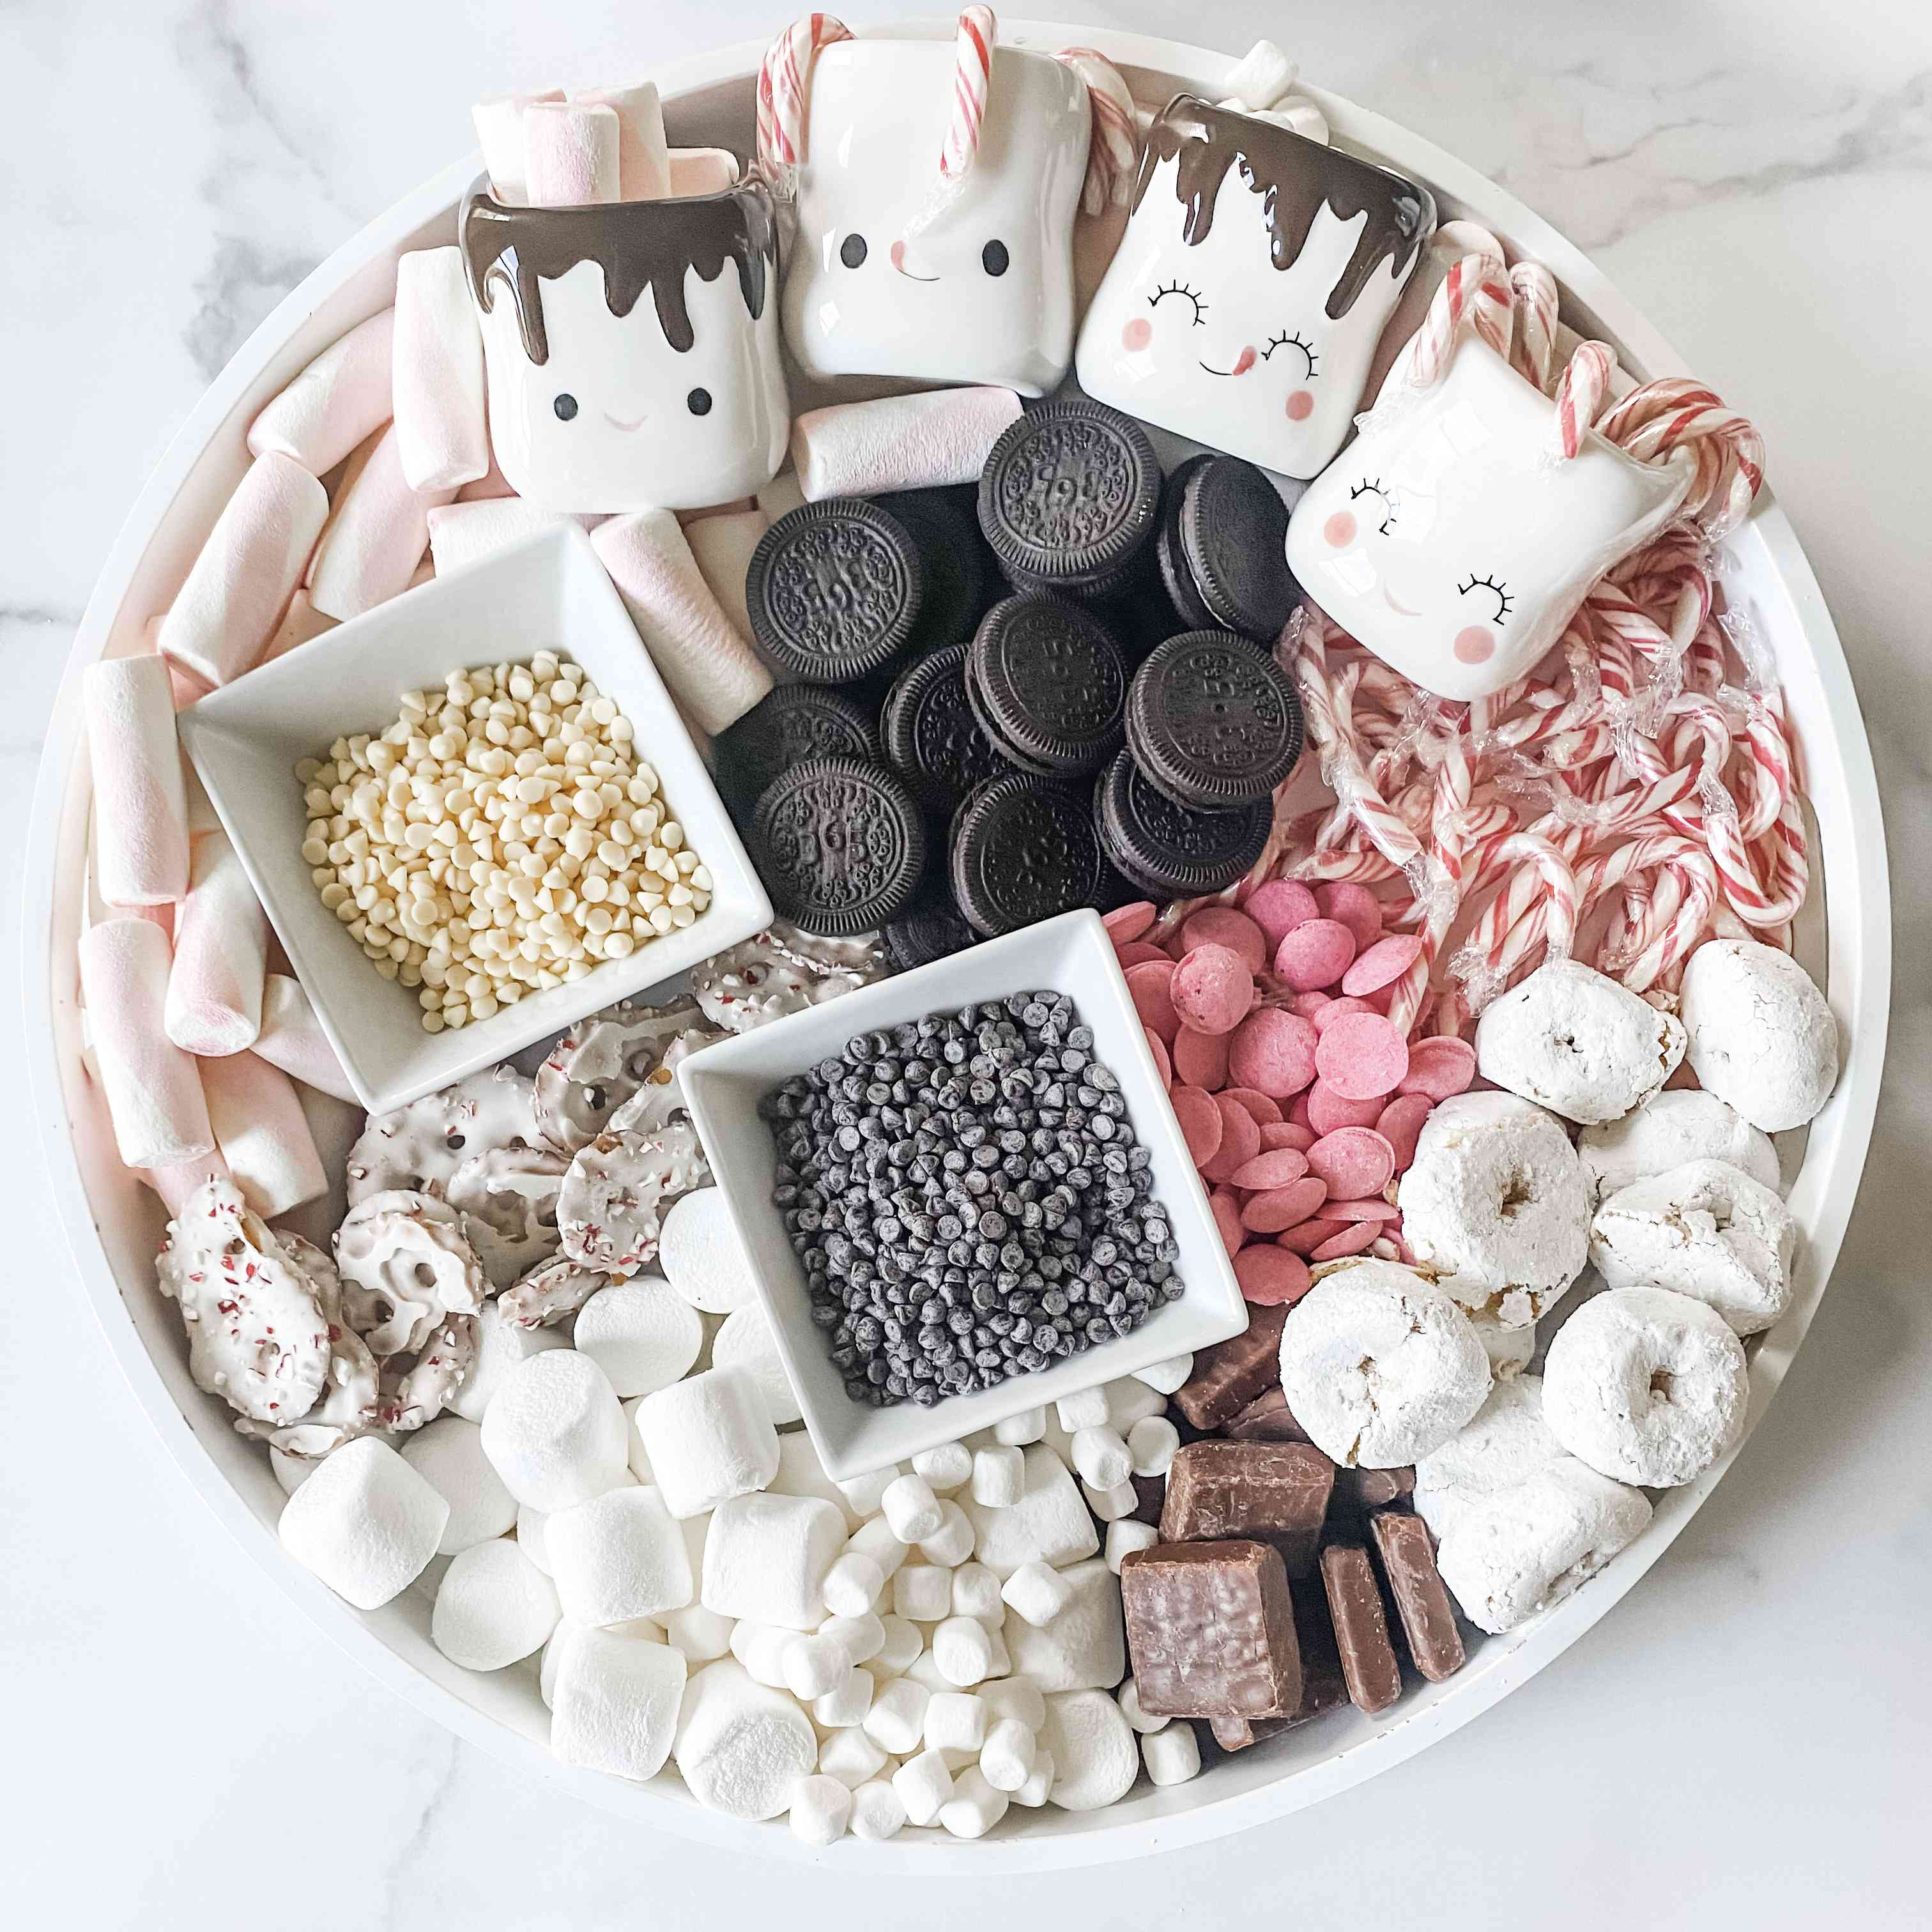 Cocoa board with peppermint treats by Mimi Markopoulos